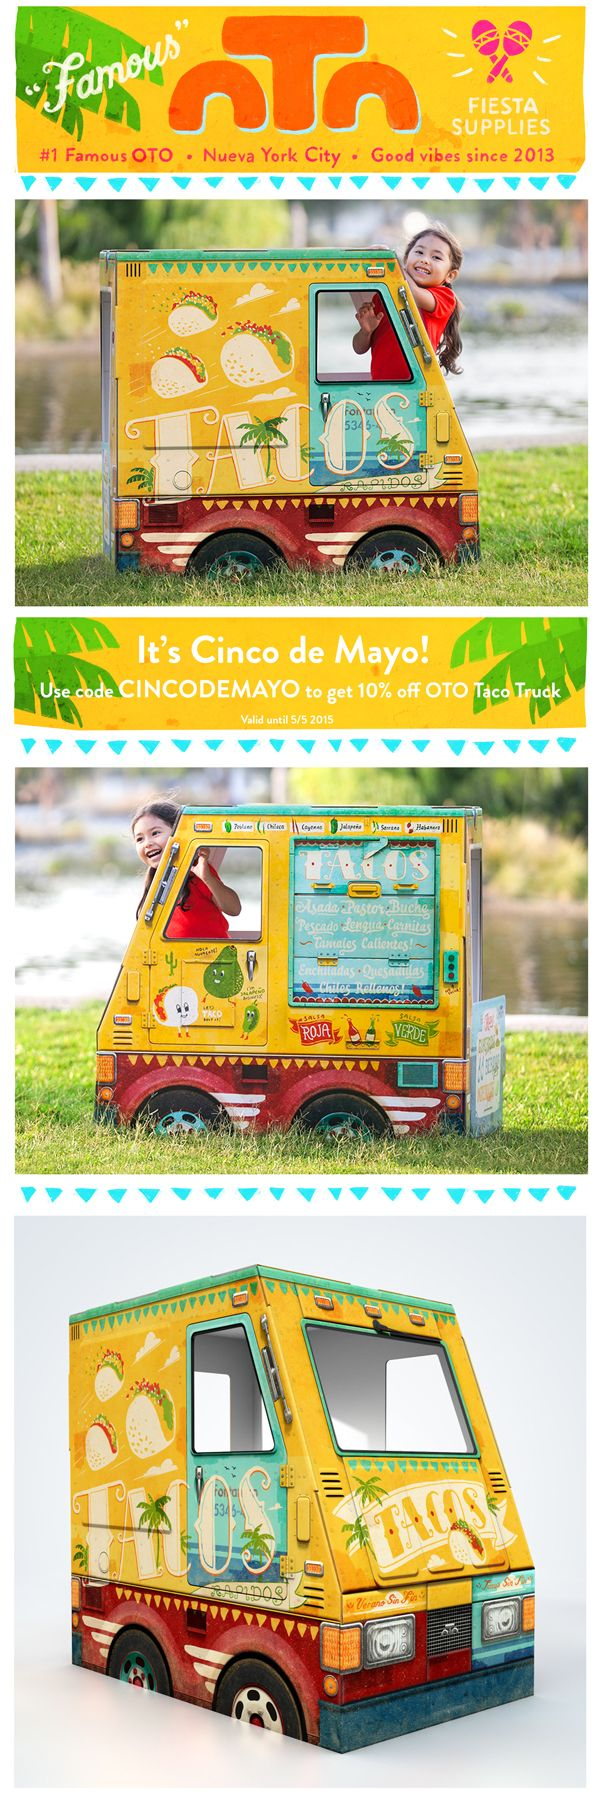 For Cinco de Mayo, use the code CINCODEMAYO to get 10% off OTO Taco Truck! Valid until 5/5 2015